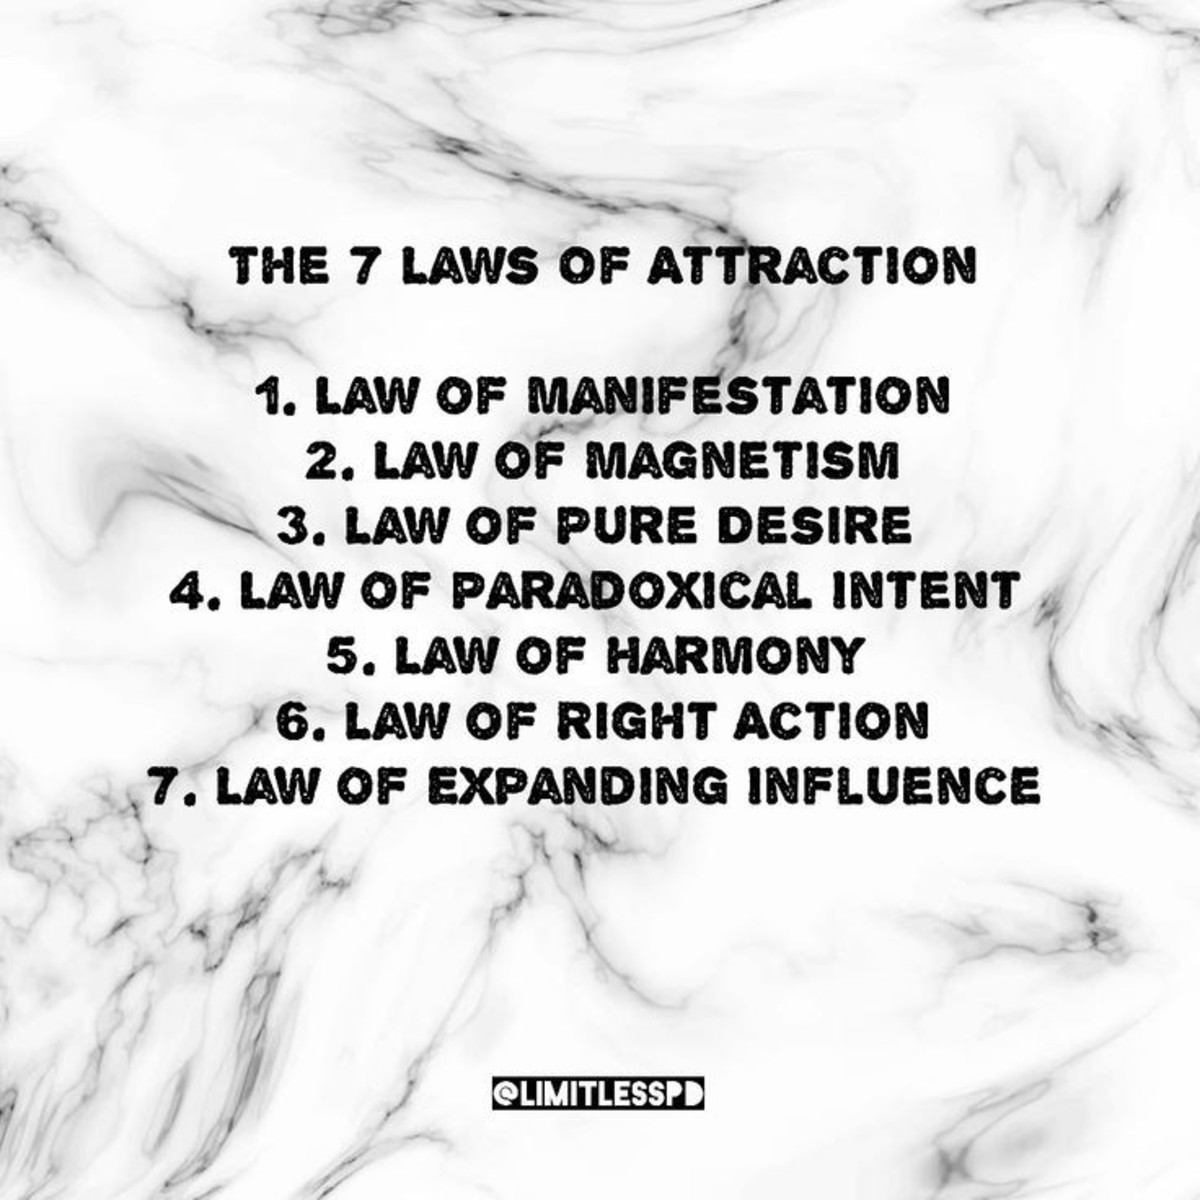 The 7 Laws of Attraction.